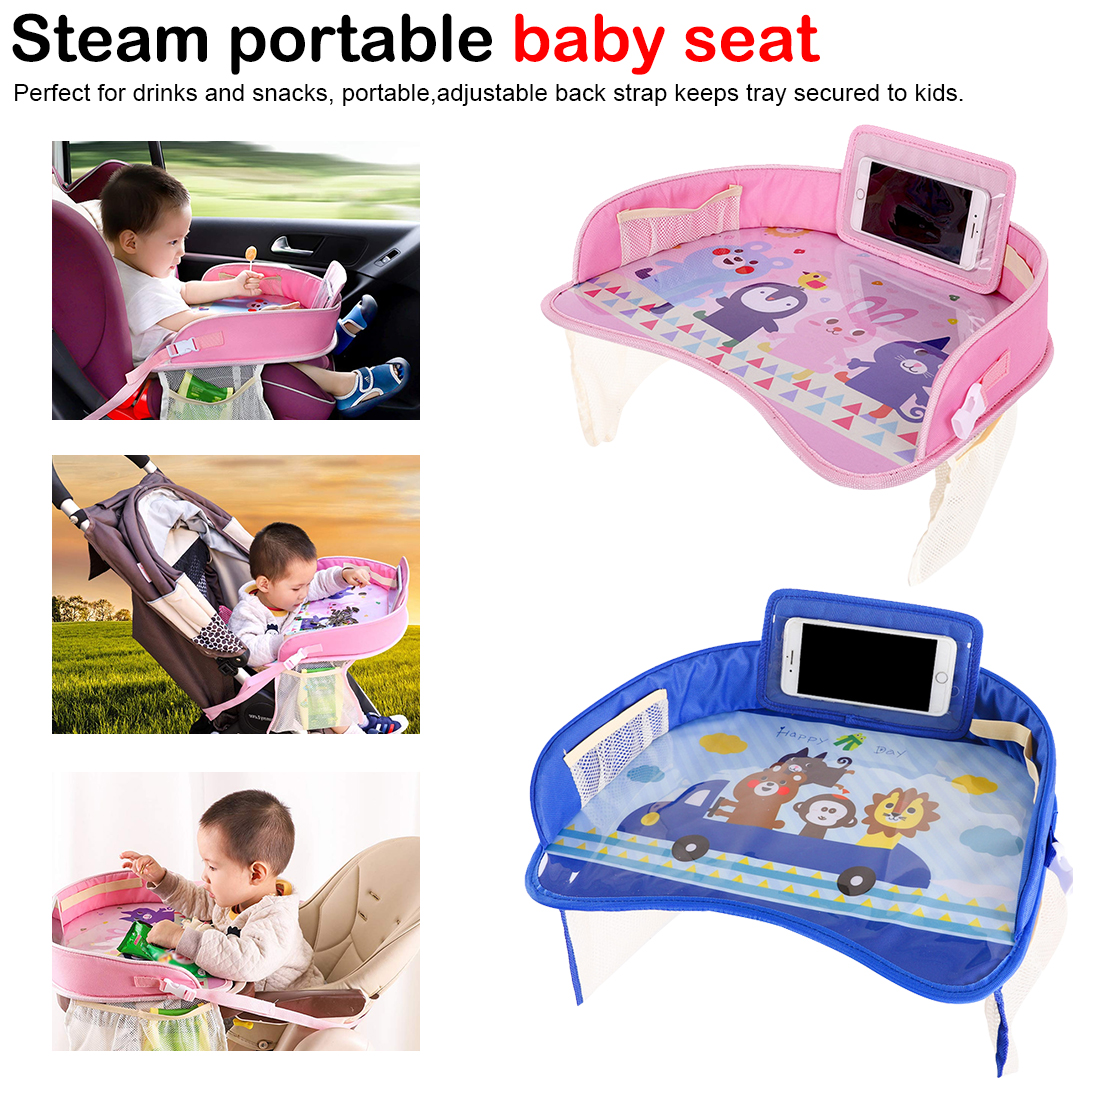 Portable Stroller Accessories Baby Car Safety Seat Tray Storage Waterproof Kids Toys Stroller Holder Organizer Food Drink Table